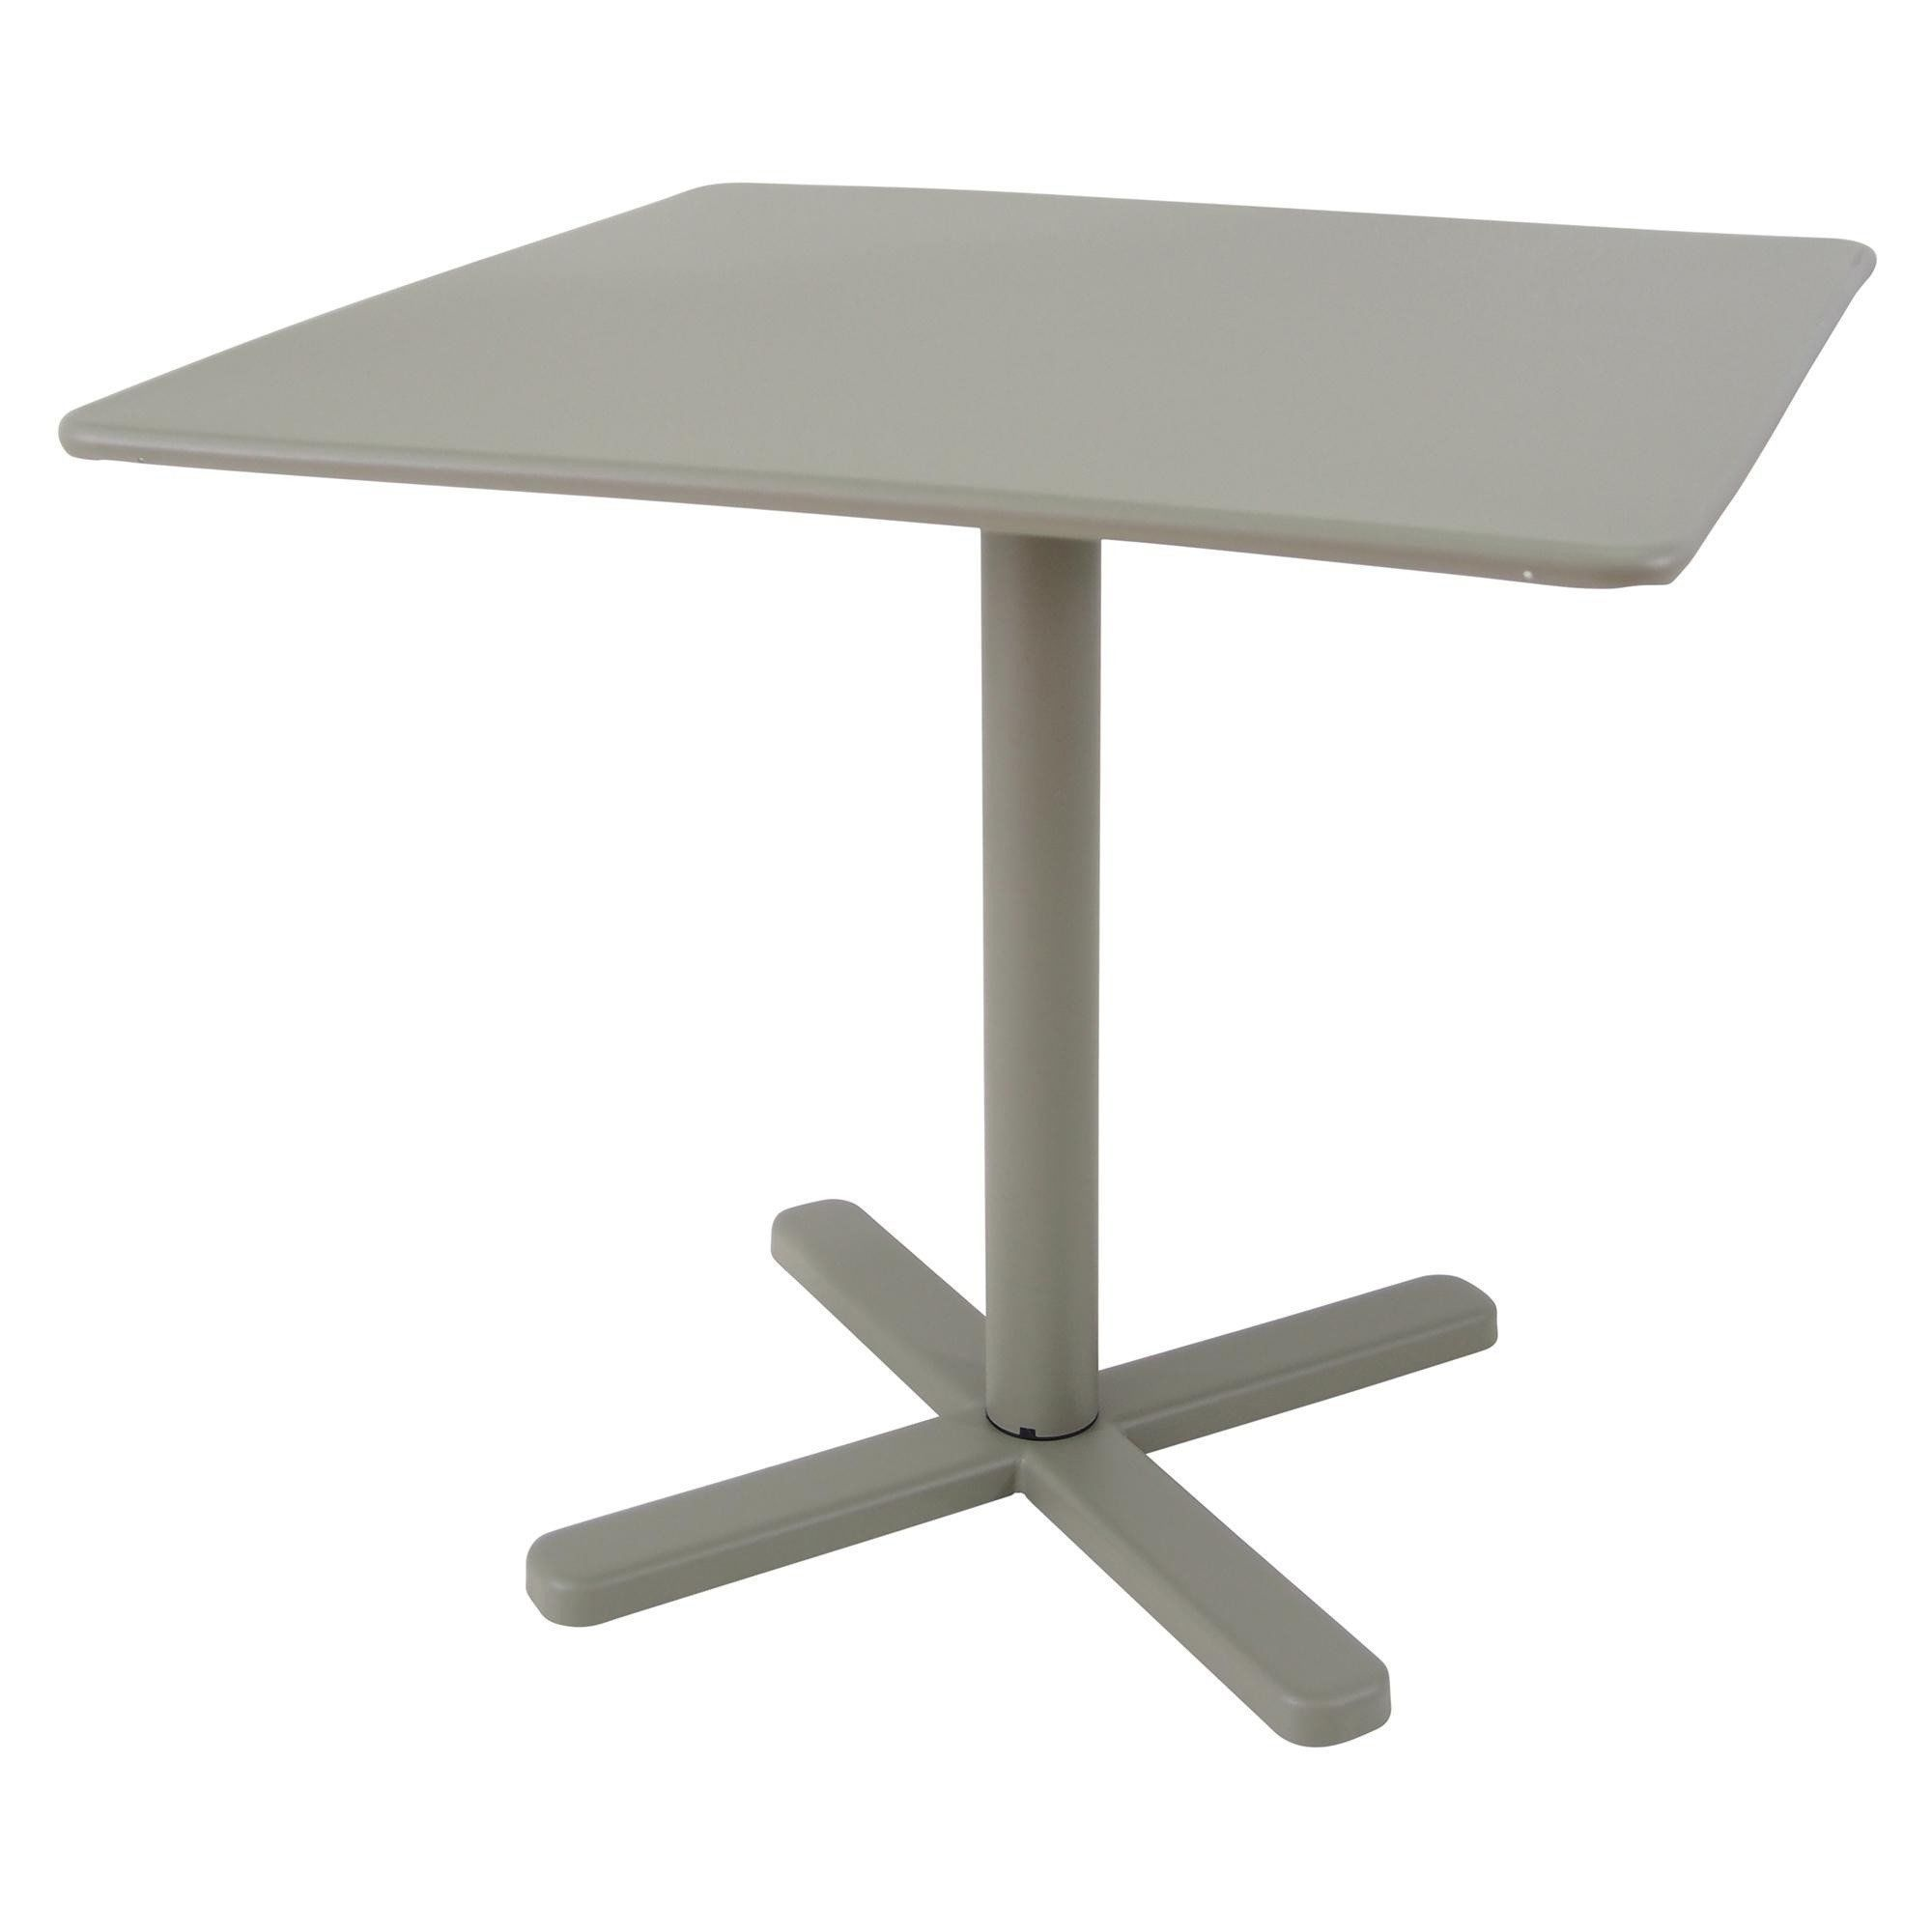 marble urban products retegui folding avenue by range table bistro